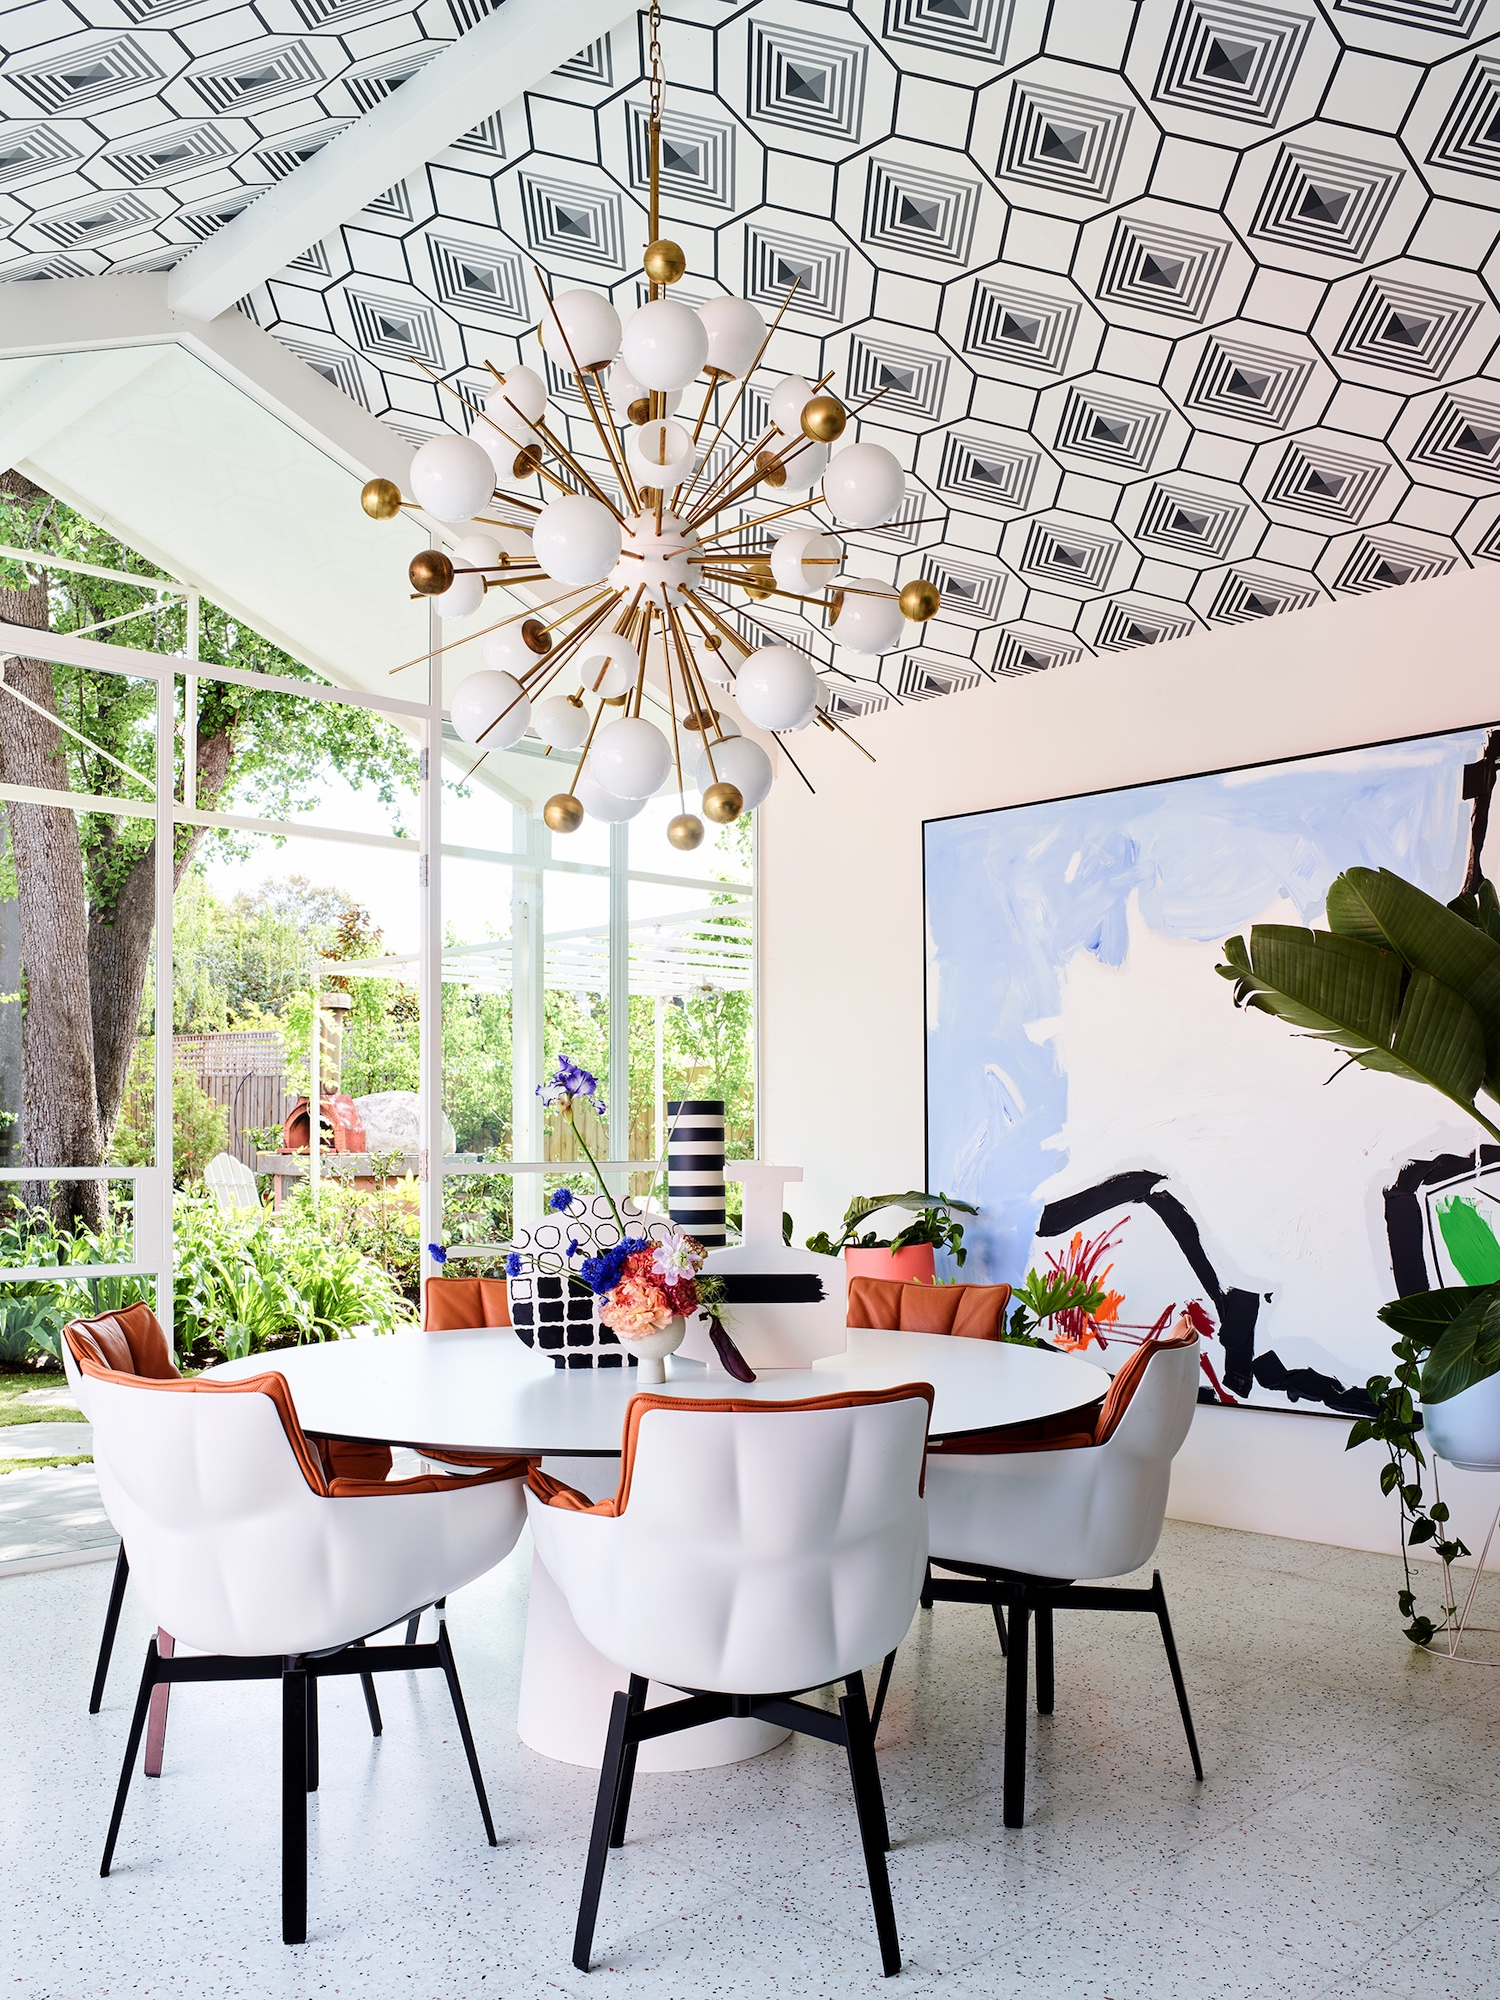 Pitella Family Home by Simone Pitella | est living